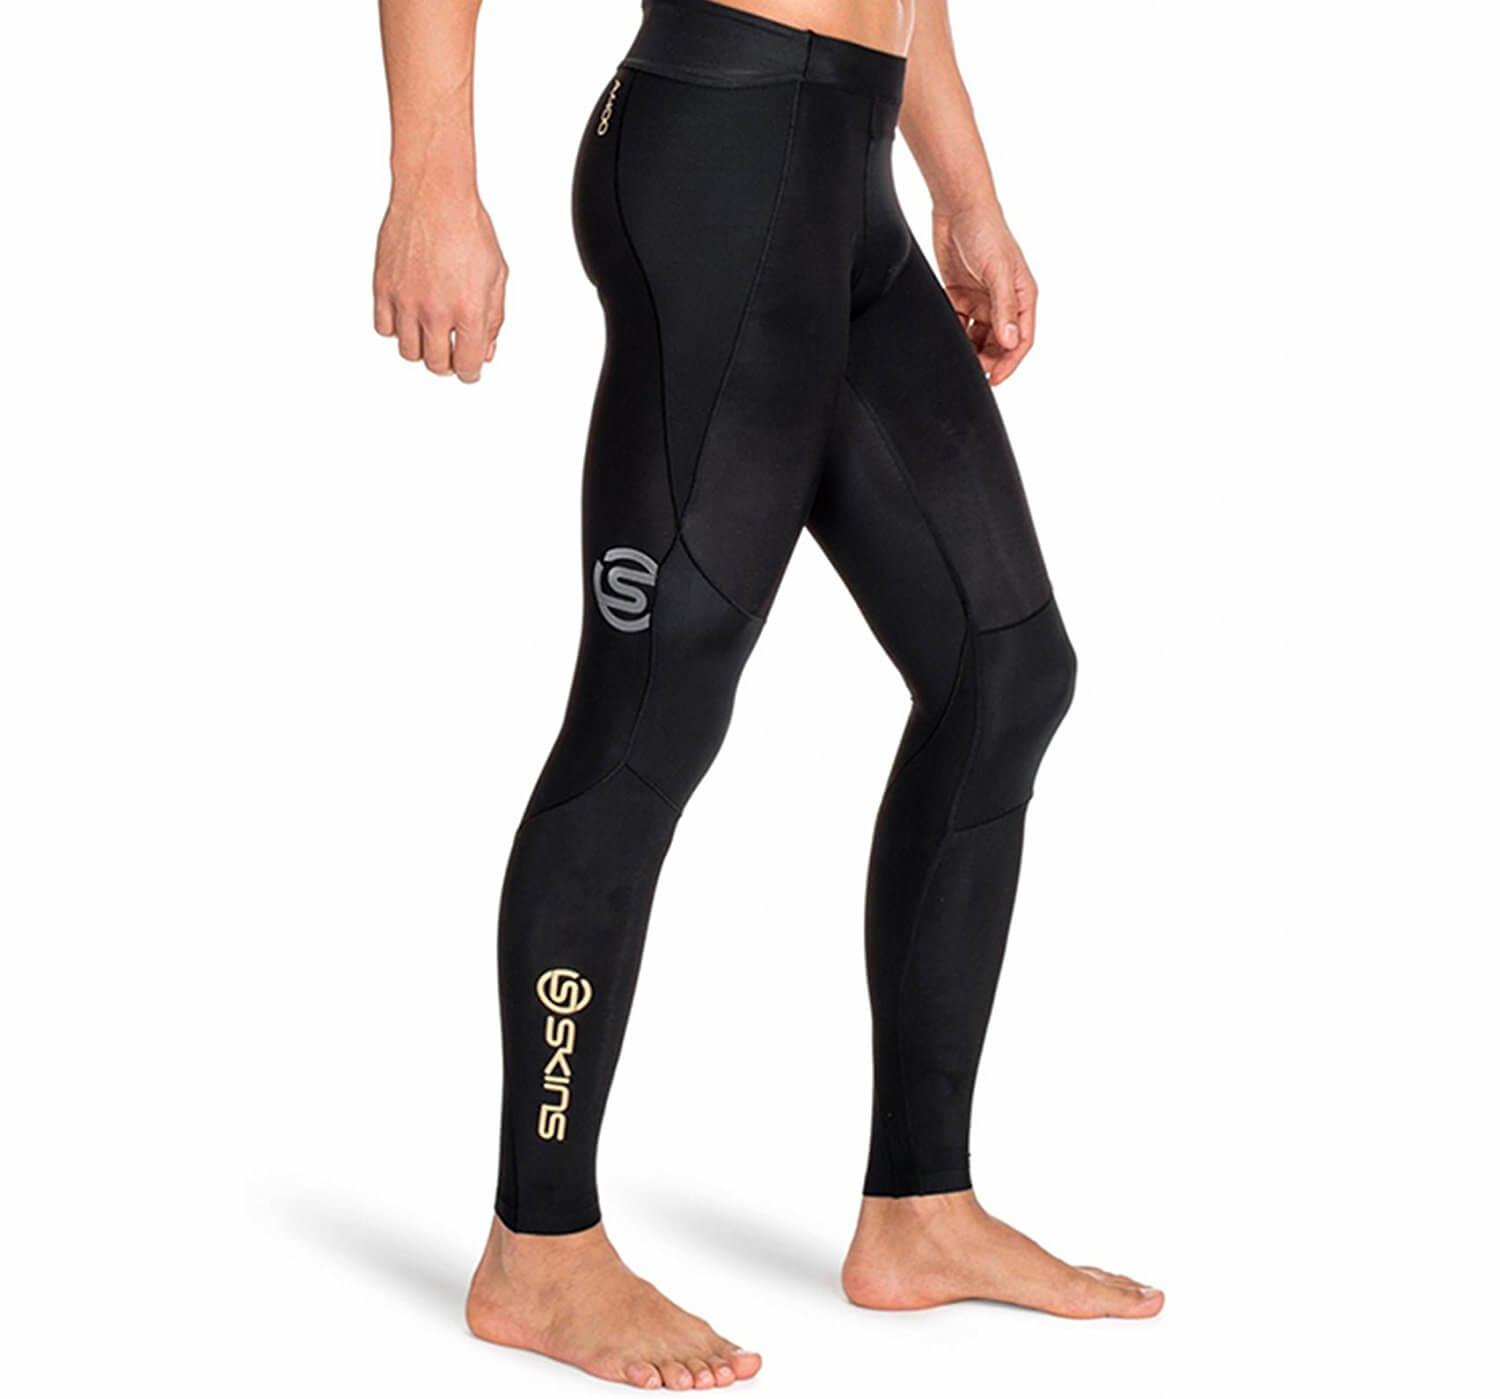 12. SKINS Men's A400 Compression Long Tights